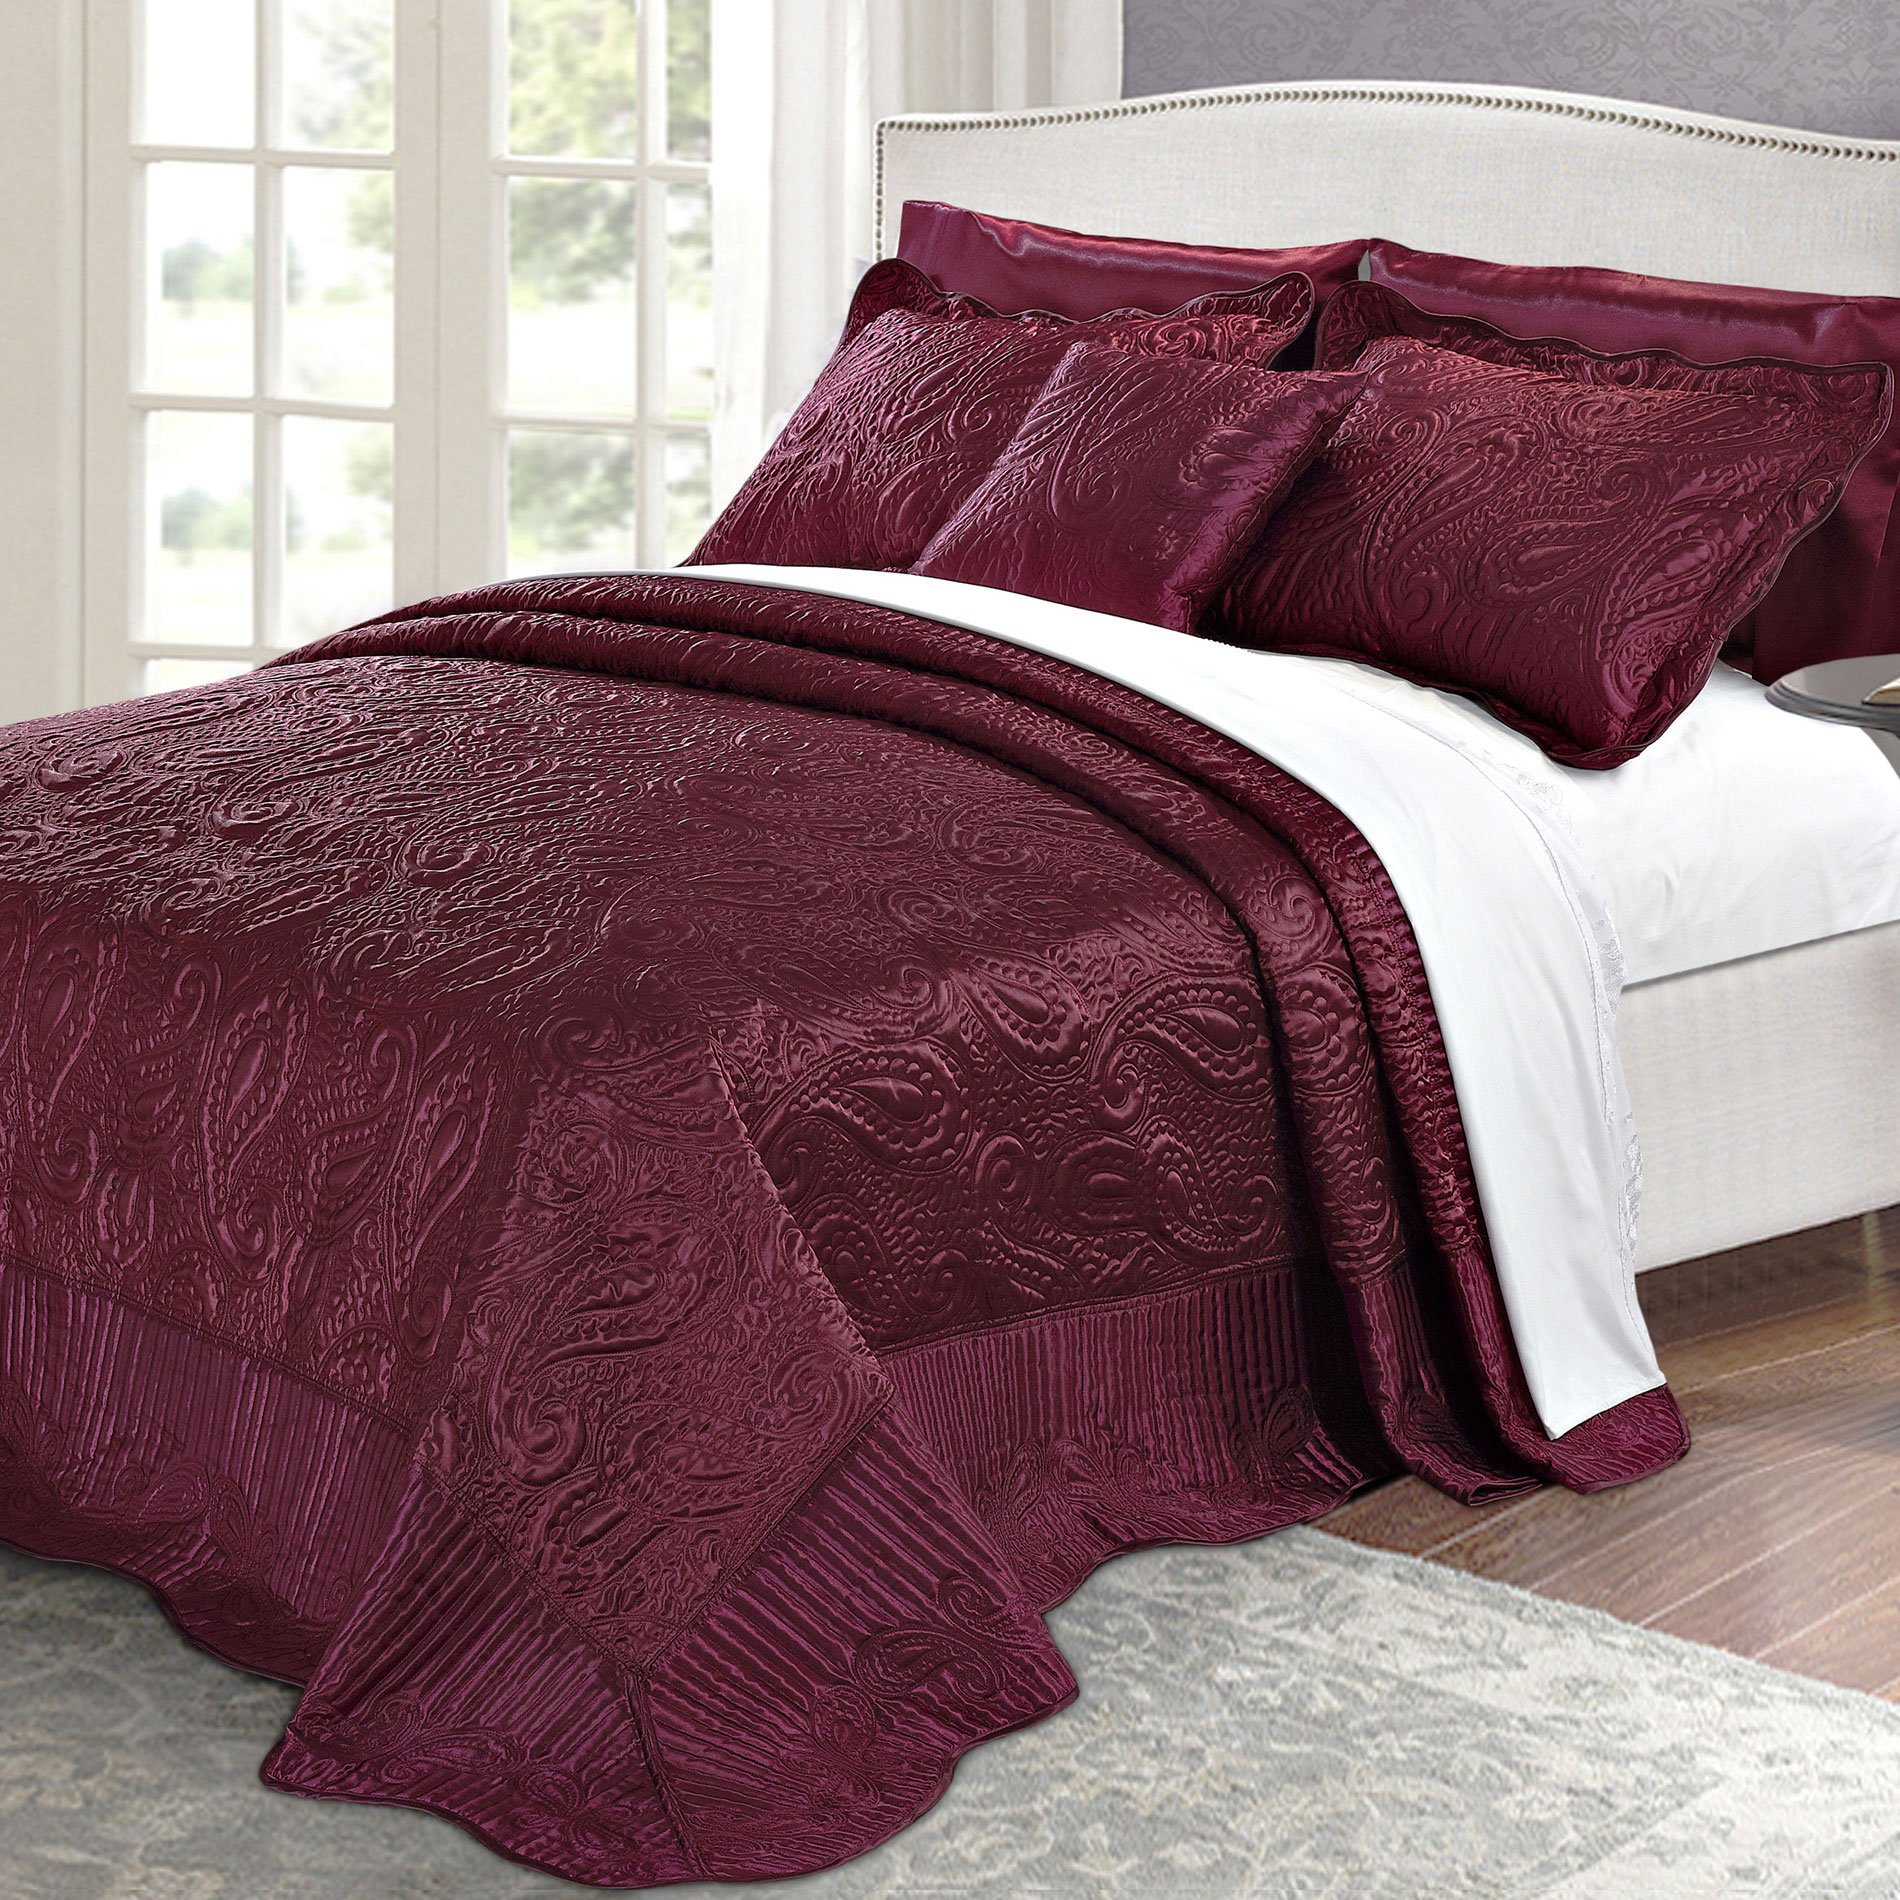 Home Soft Things Serenta Quilted Satin 4 Piece Bedspread Set, King, Burgundy by Home Soft Things (Image #1)